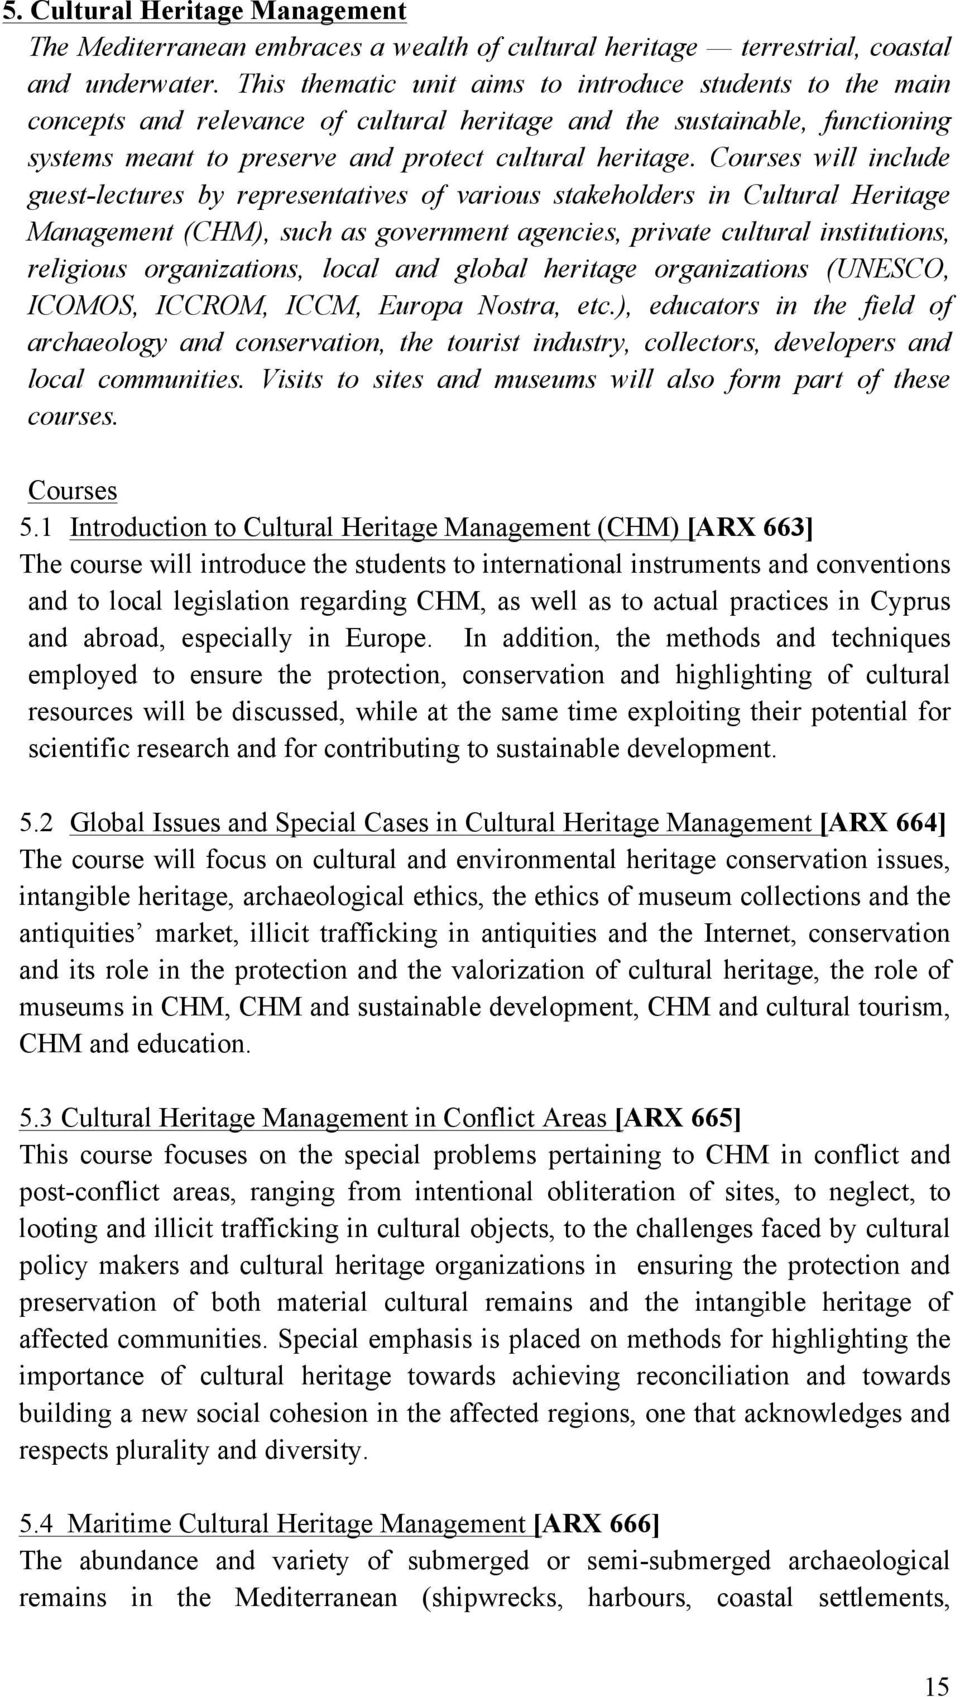 Courses will include guest-lectures by representatives of various stakeholders in Cultural Heritage Management (CHM), such as government agencies, private cultural institutions, religious